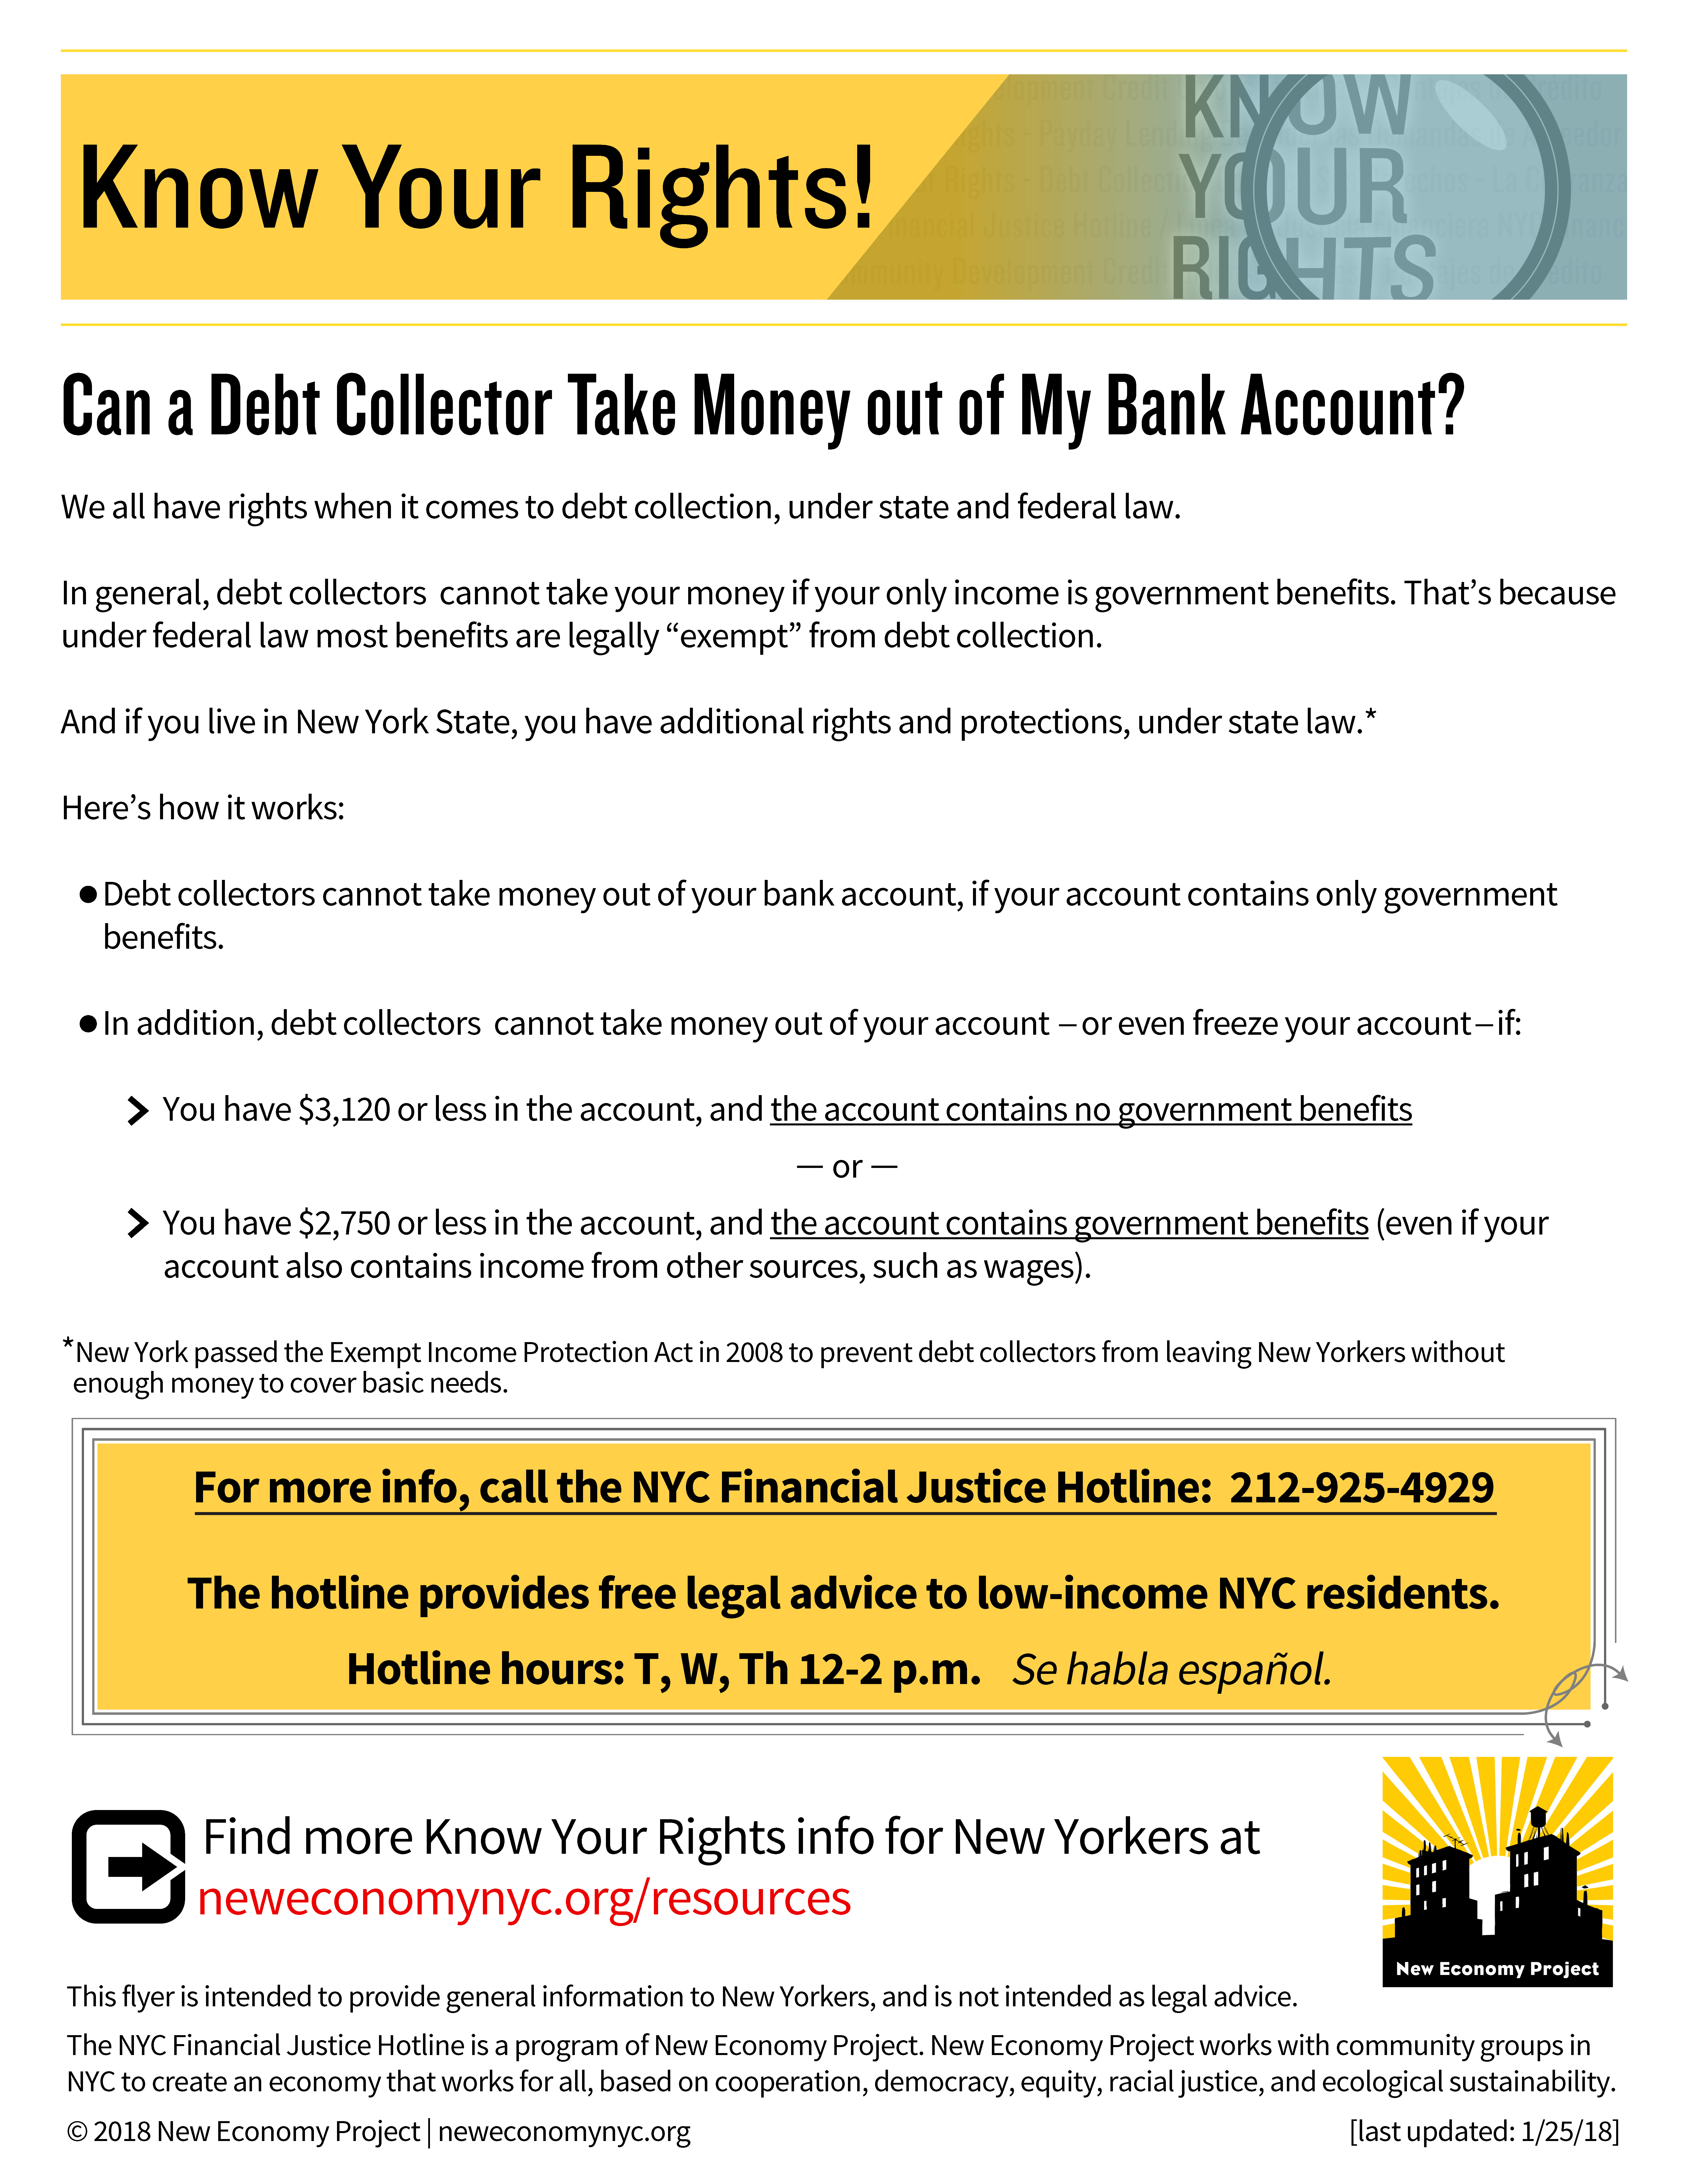 Frozen bank accounts new economy project medical bills and bank loans if you have child support debt or if you owe money to the government for taxes or a student loan different rules apply altavistaventures Image collections